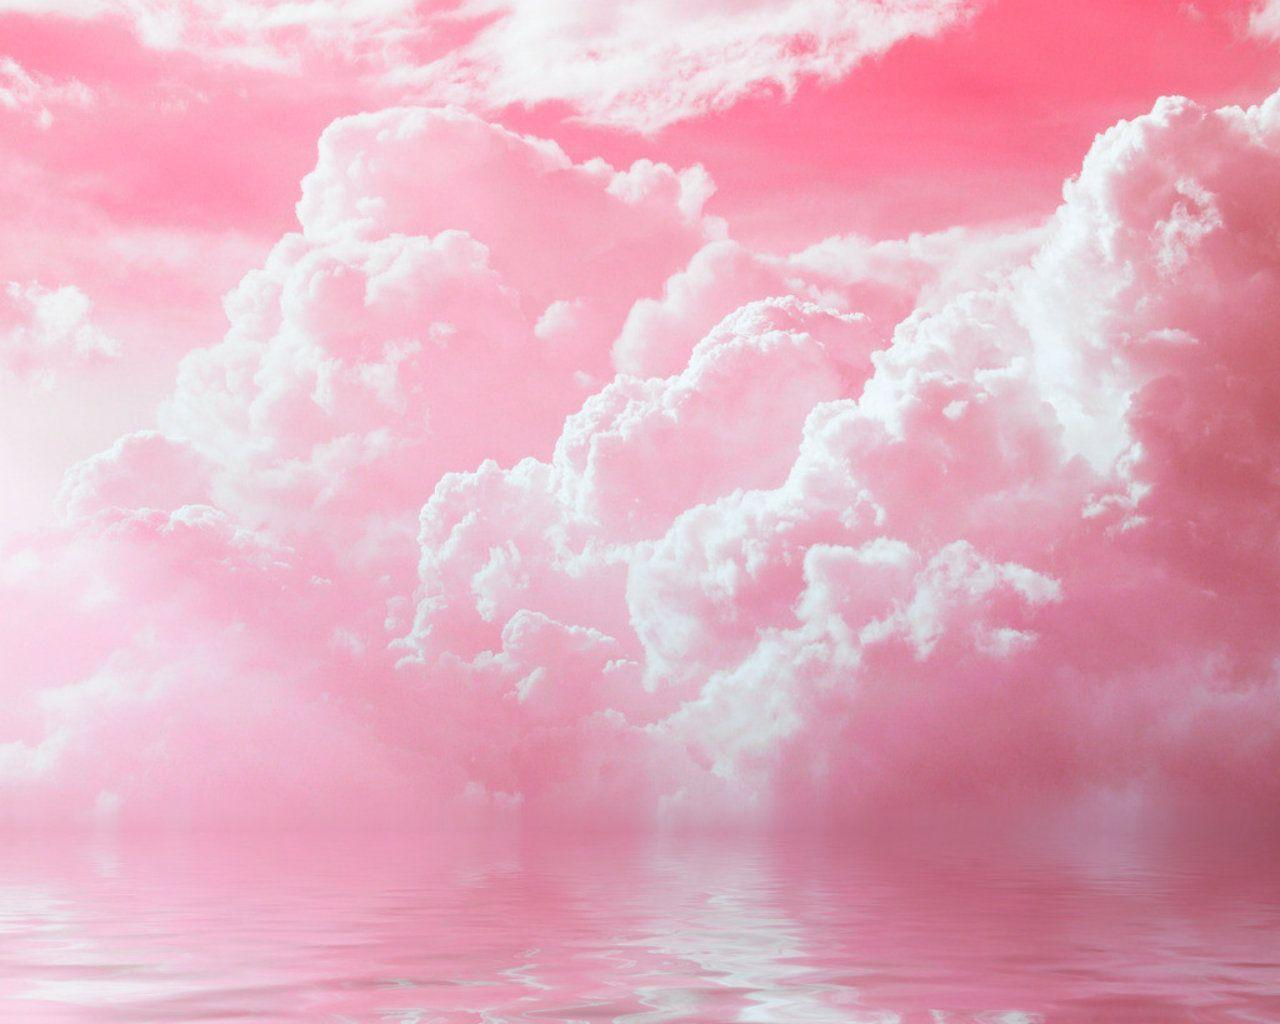 Pink Aesthetic 4k Wallpapers Wallpaper Cave